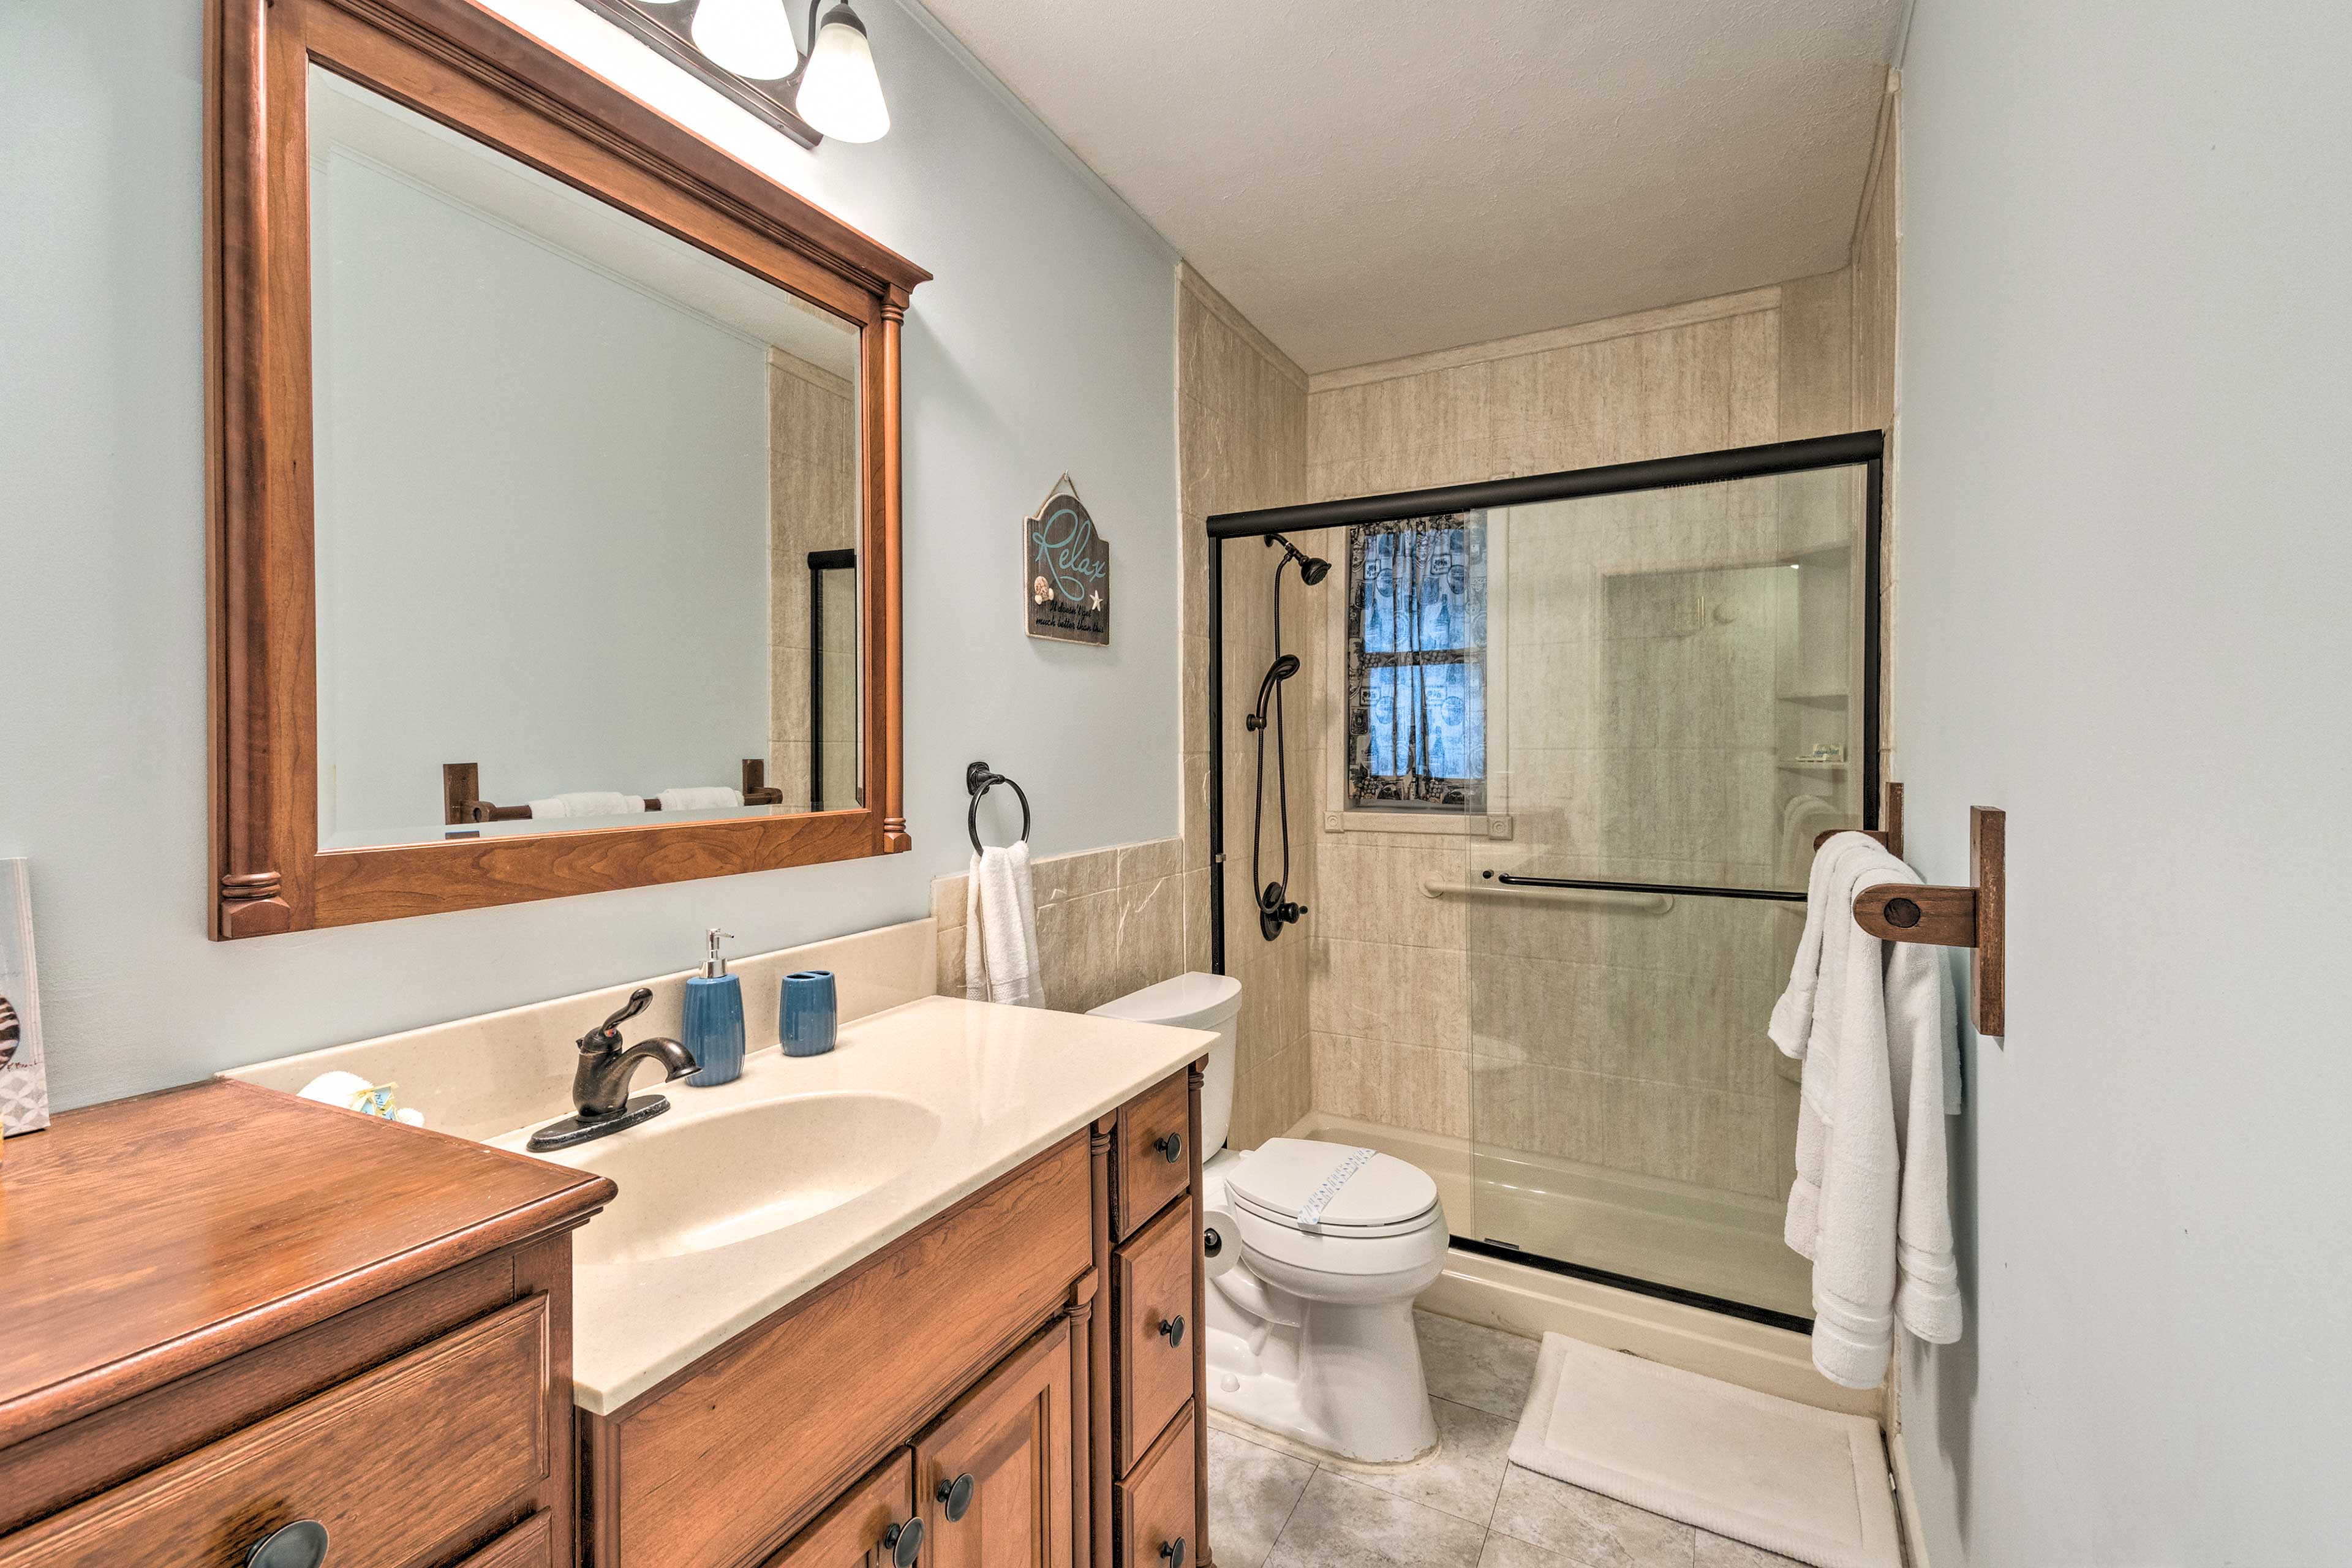 There are grab rails in this walk-in shower.